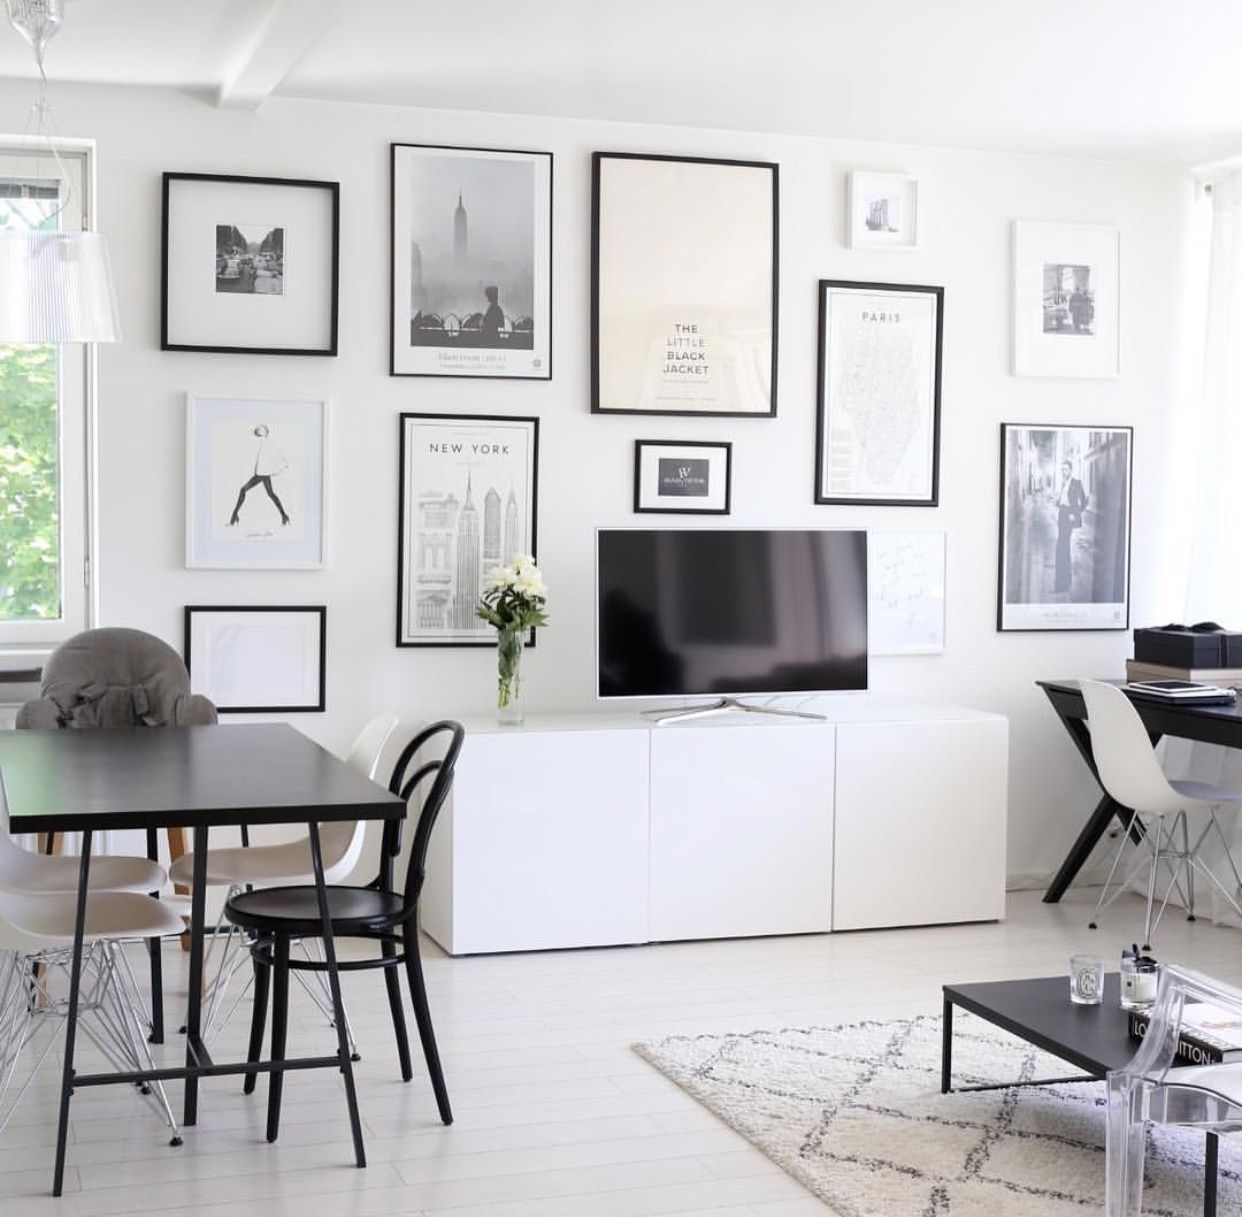 framing the tv is good use of wall space | wall art | Pinterest ...